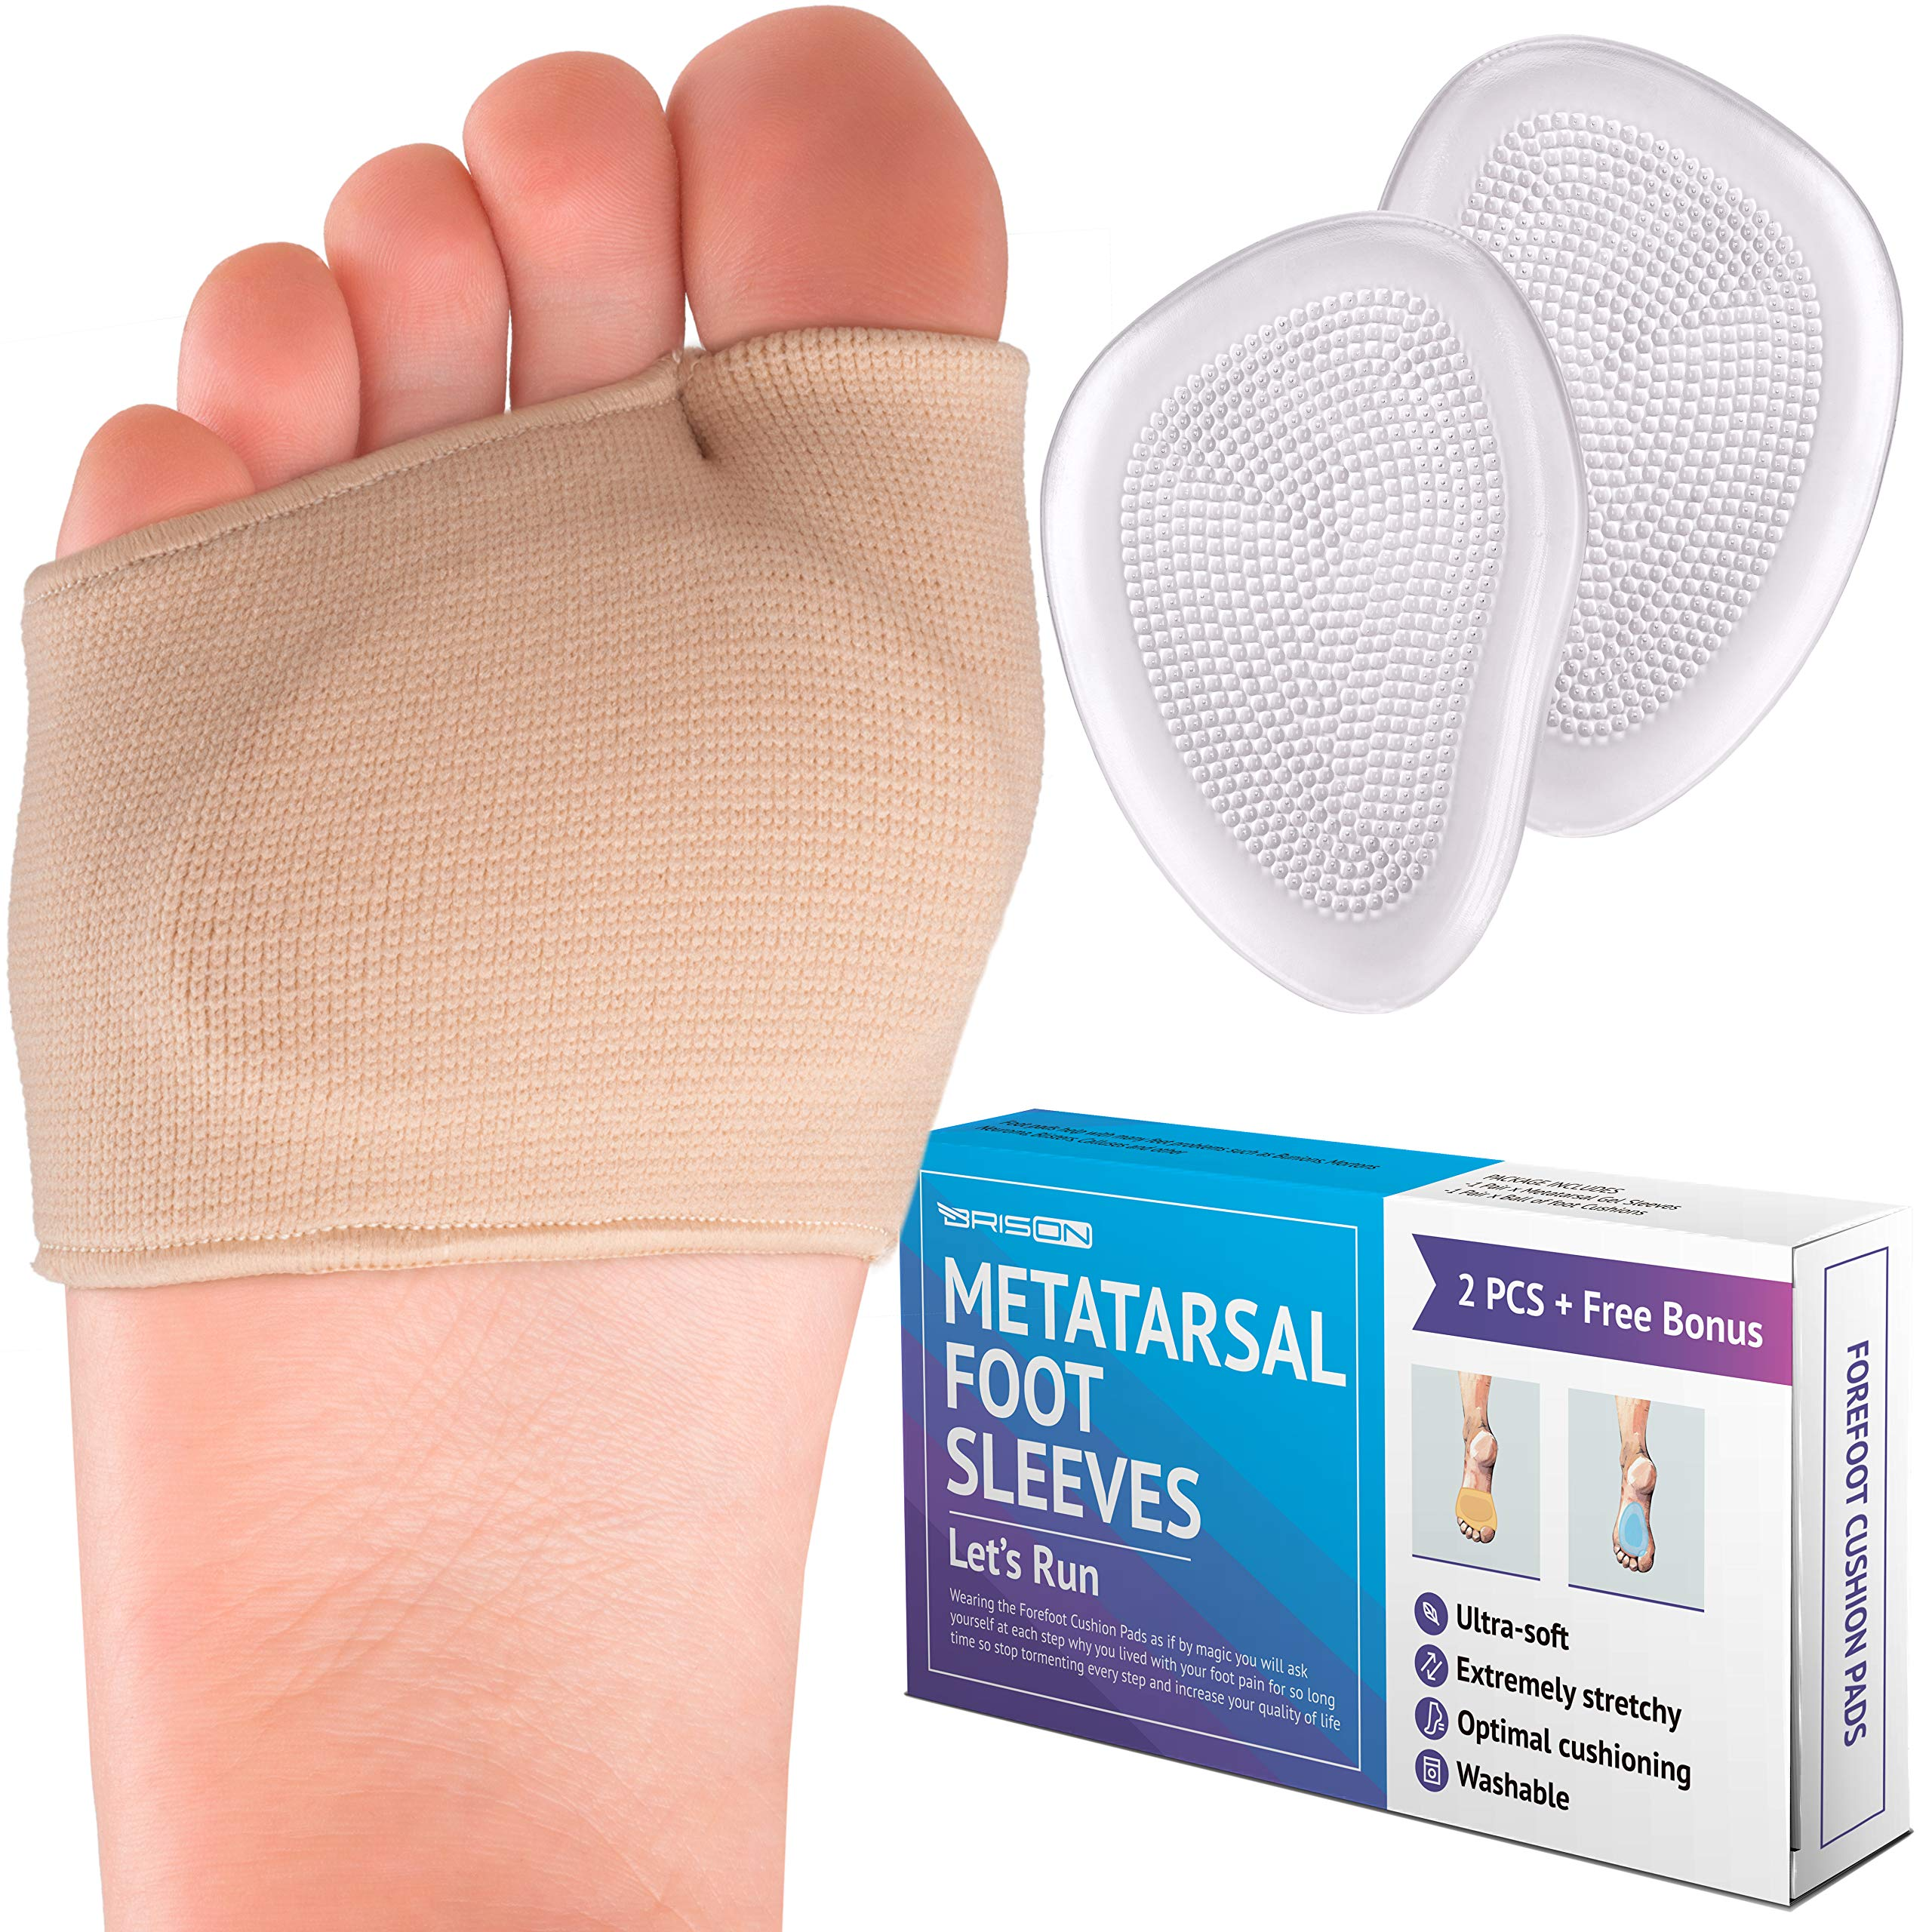 Metatarsal Pads - Gel Sleeves Forefoot Cushion Pads - Fabric Soft Foot Care Ball of Foot Cushions for Bunion Forefoot Mortons Neuroma Blisters Callus Supports Metatarsalgia Pain Relief - Men Women by BRISON